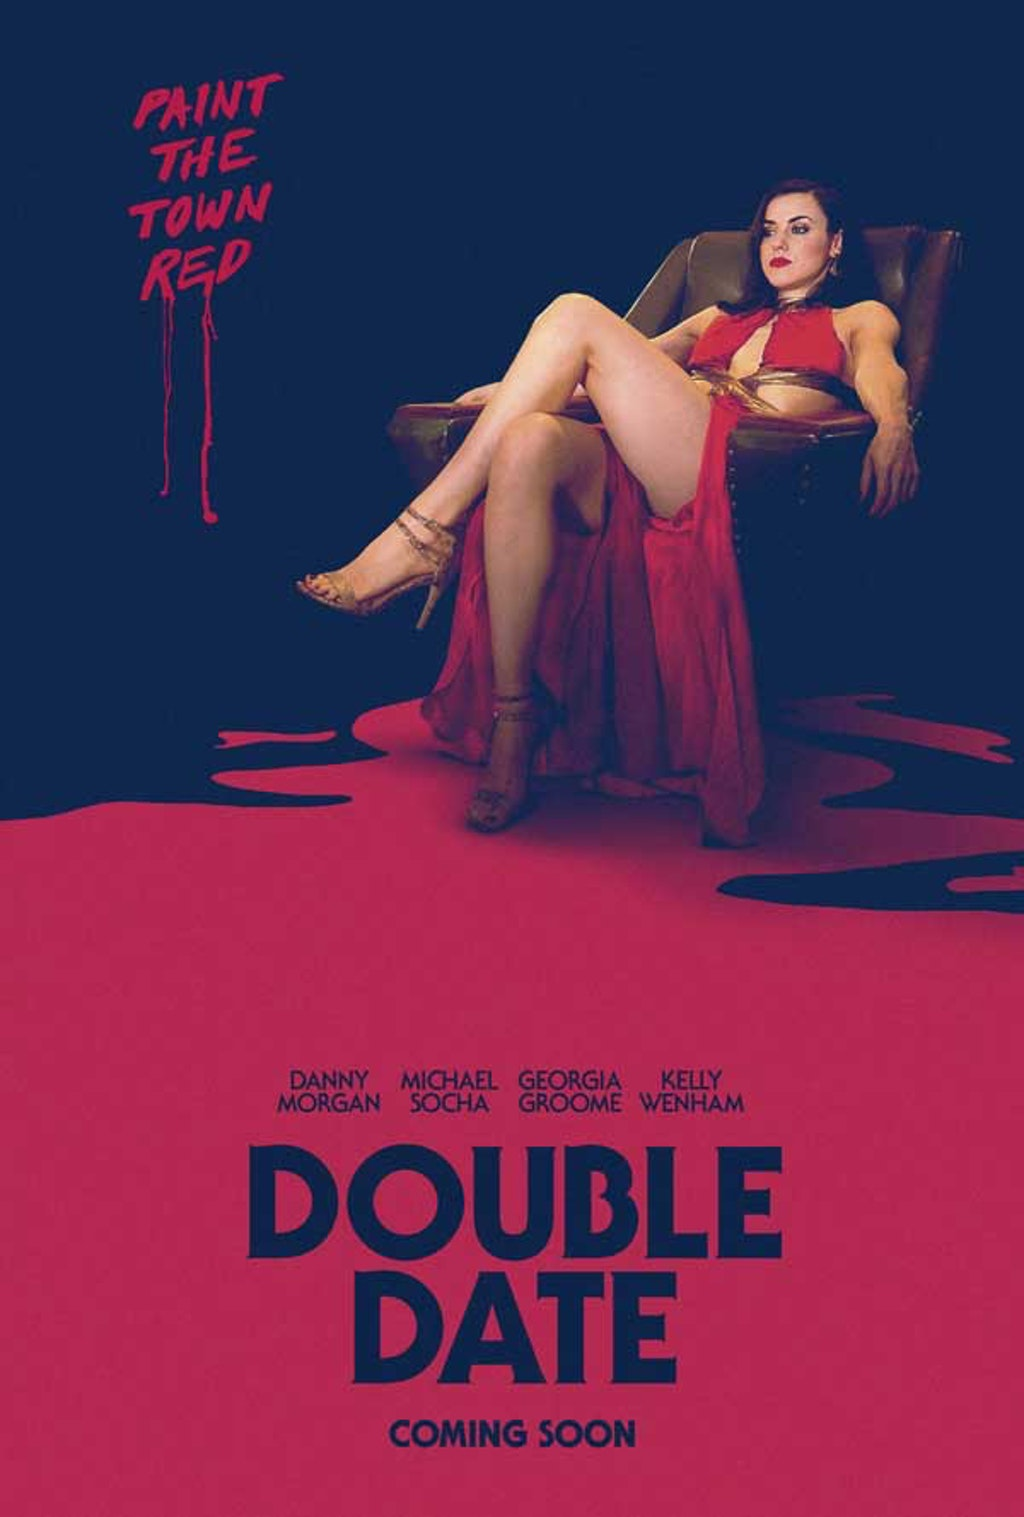 Double Date given nationwide release